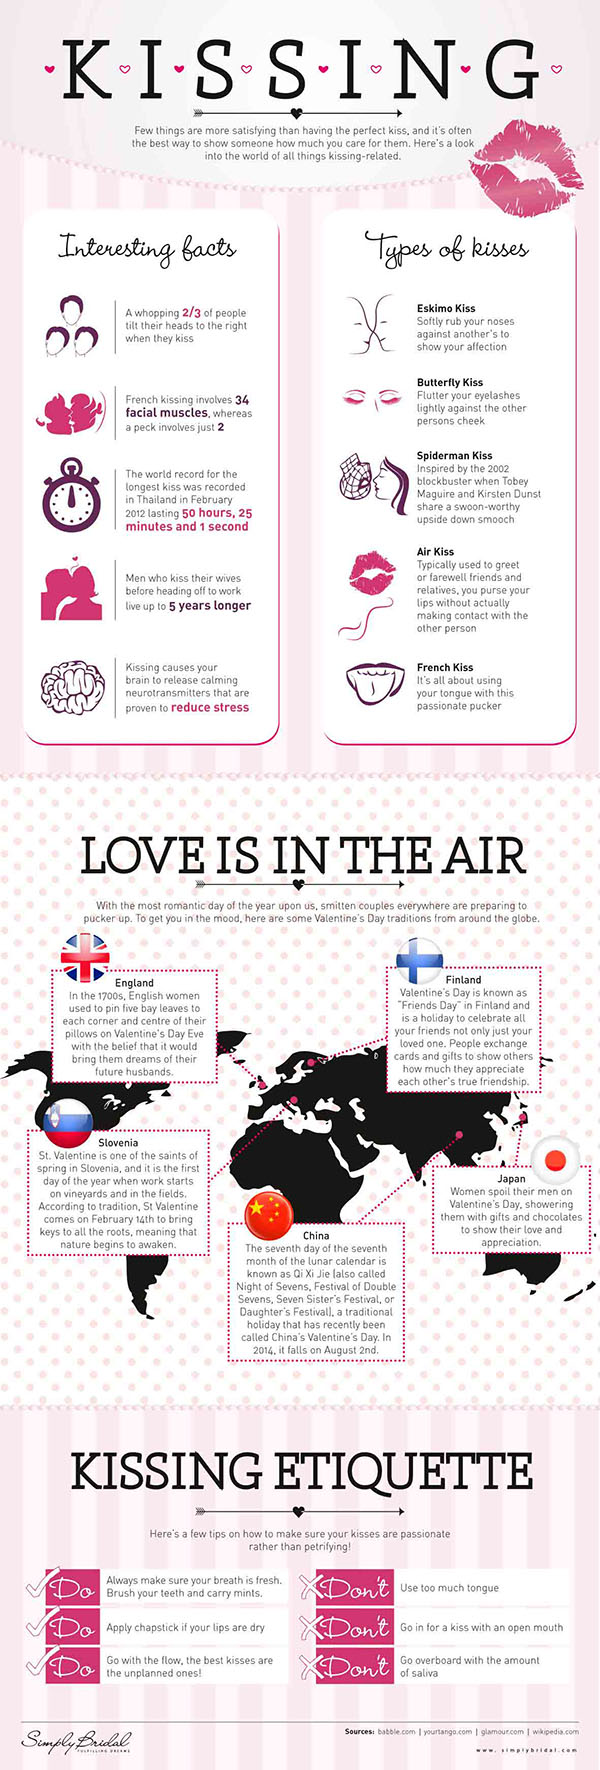 Valentine's Facts About Kissing